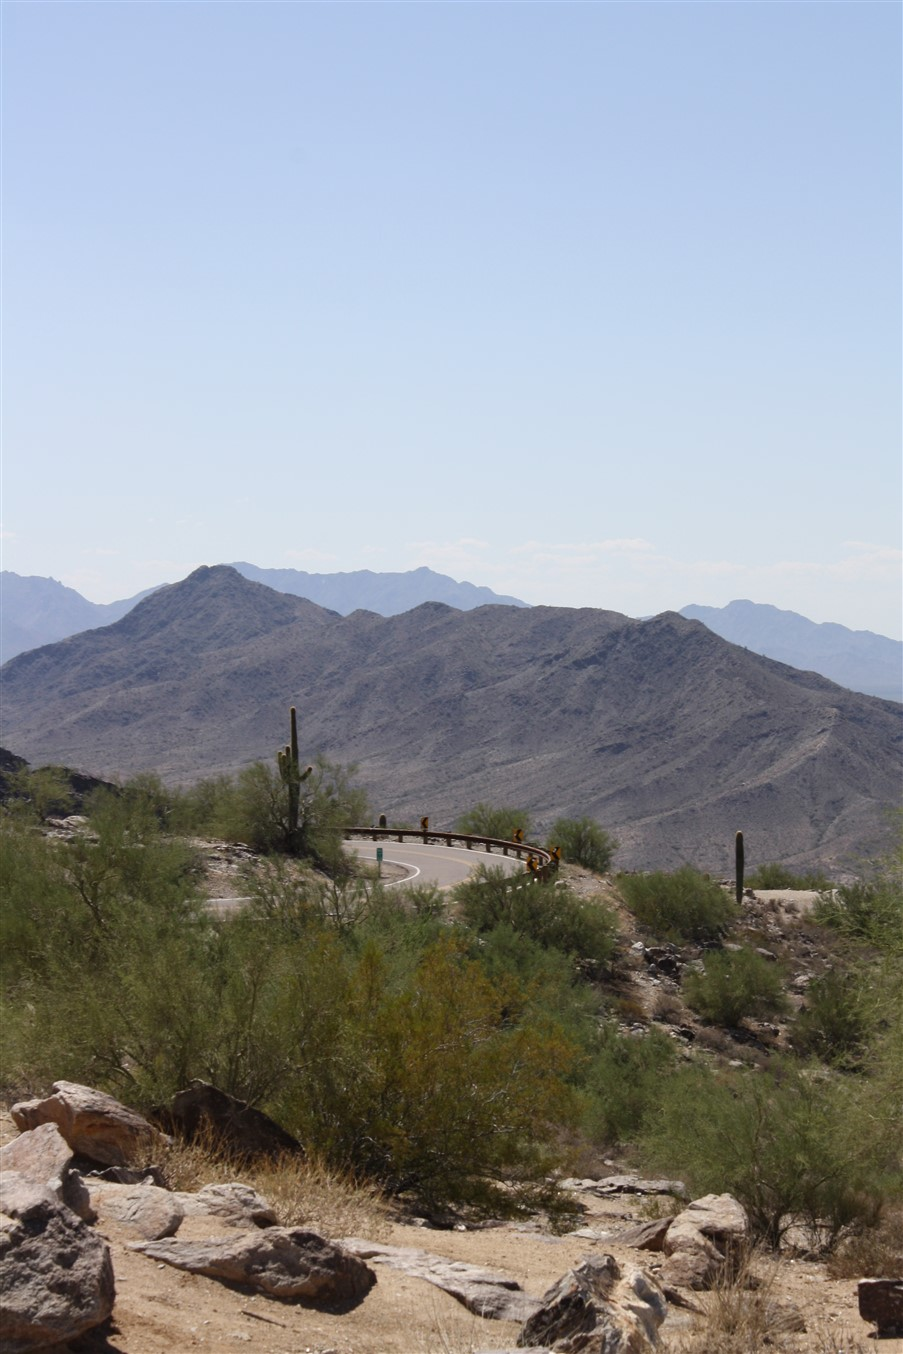 2009 08 26 49 Phoenix South Mountain.jpg